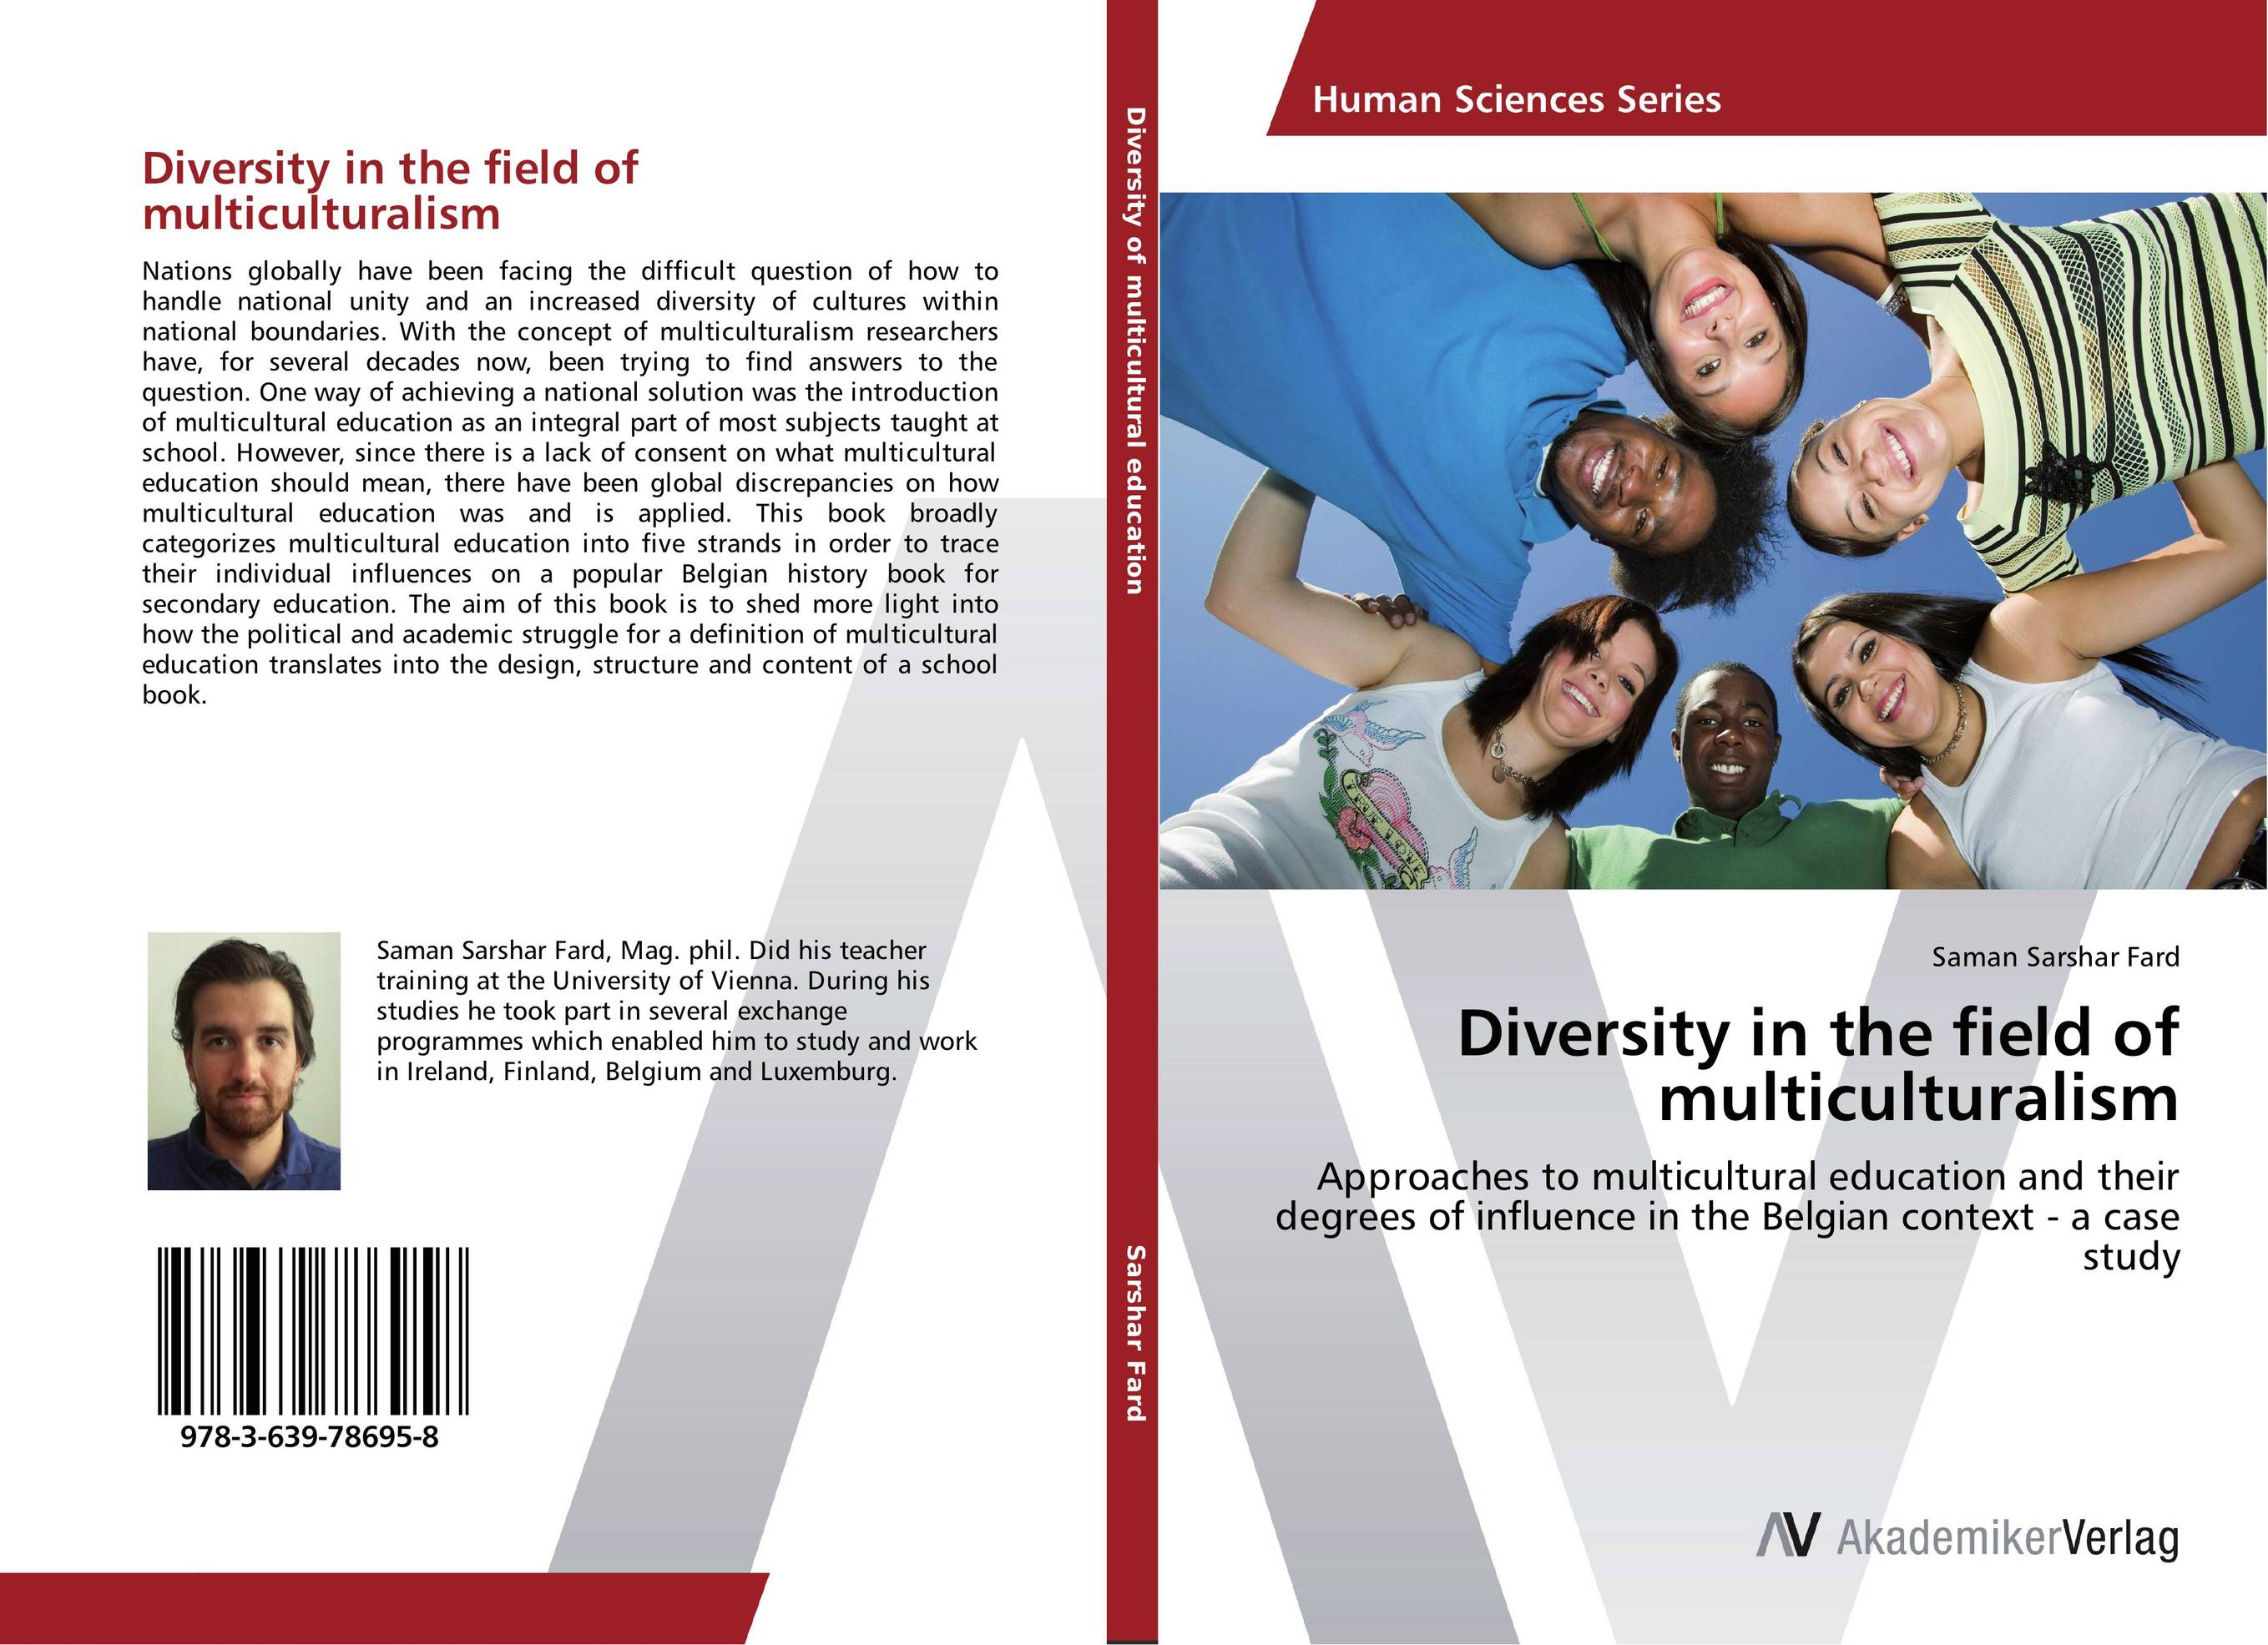 multiculturalism and diversity in the workplace essay The value of multiculturalism and diversity in business diversity and multiculturalism are two topics that value of diversity in the workplace essay.